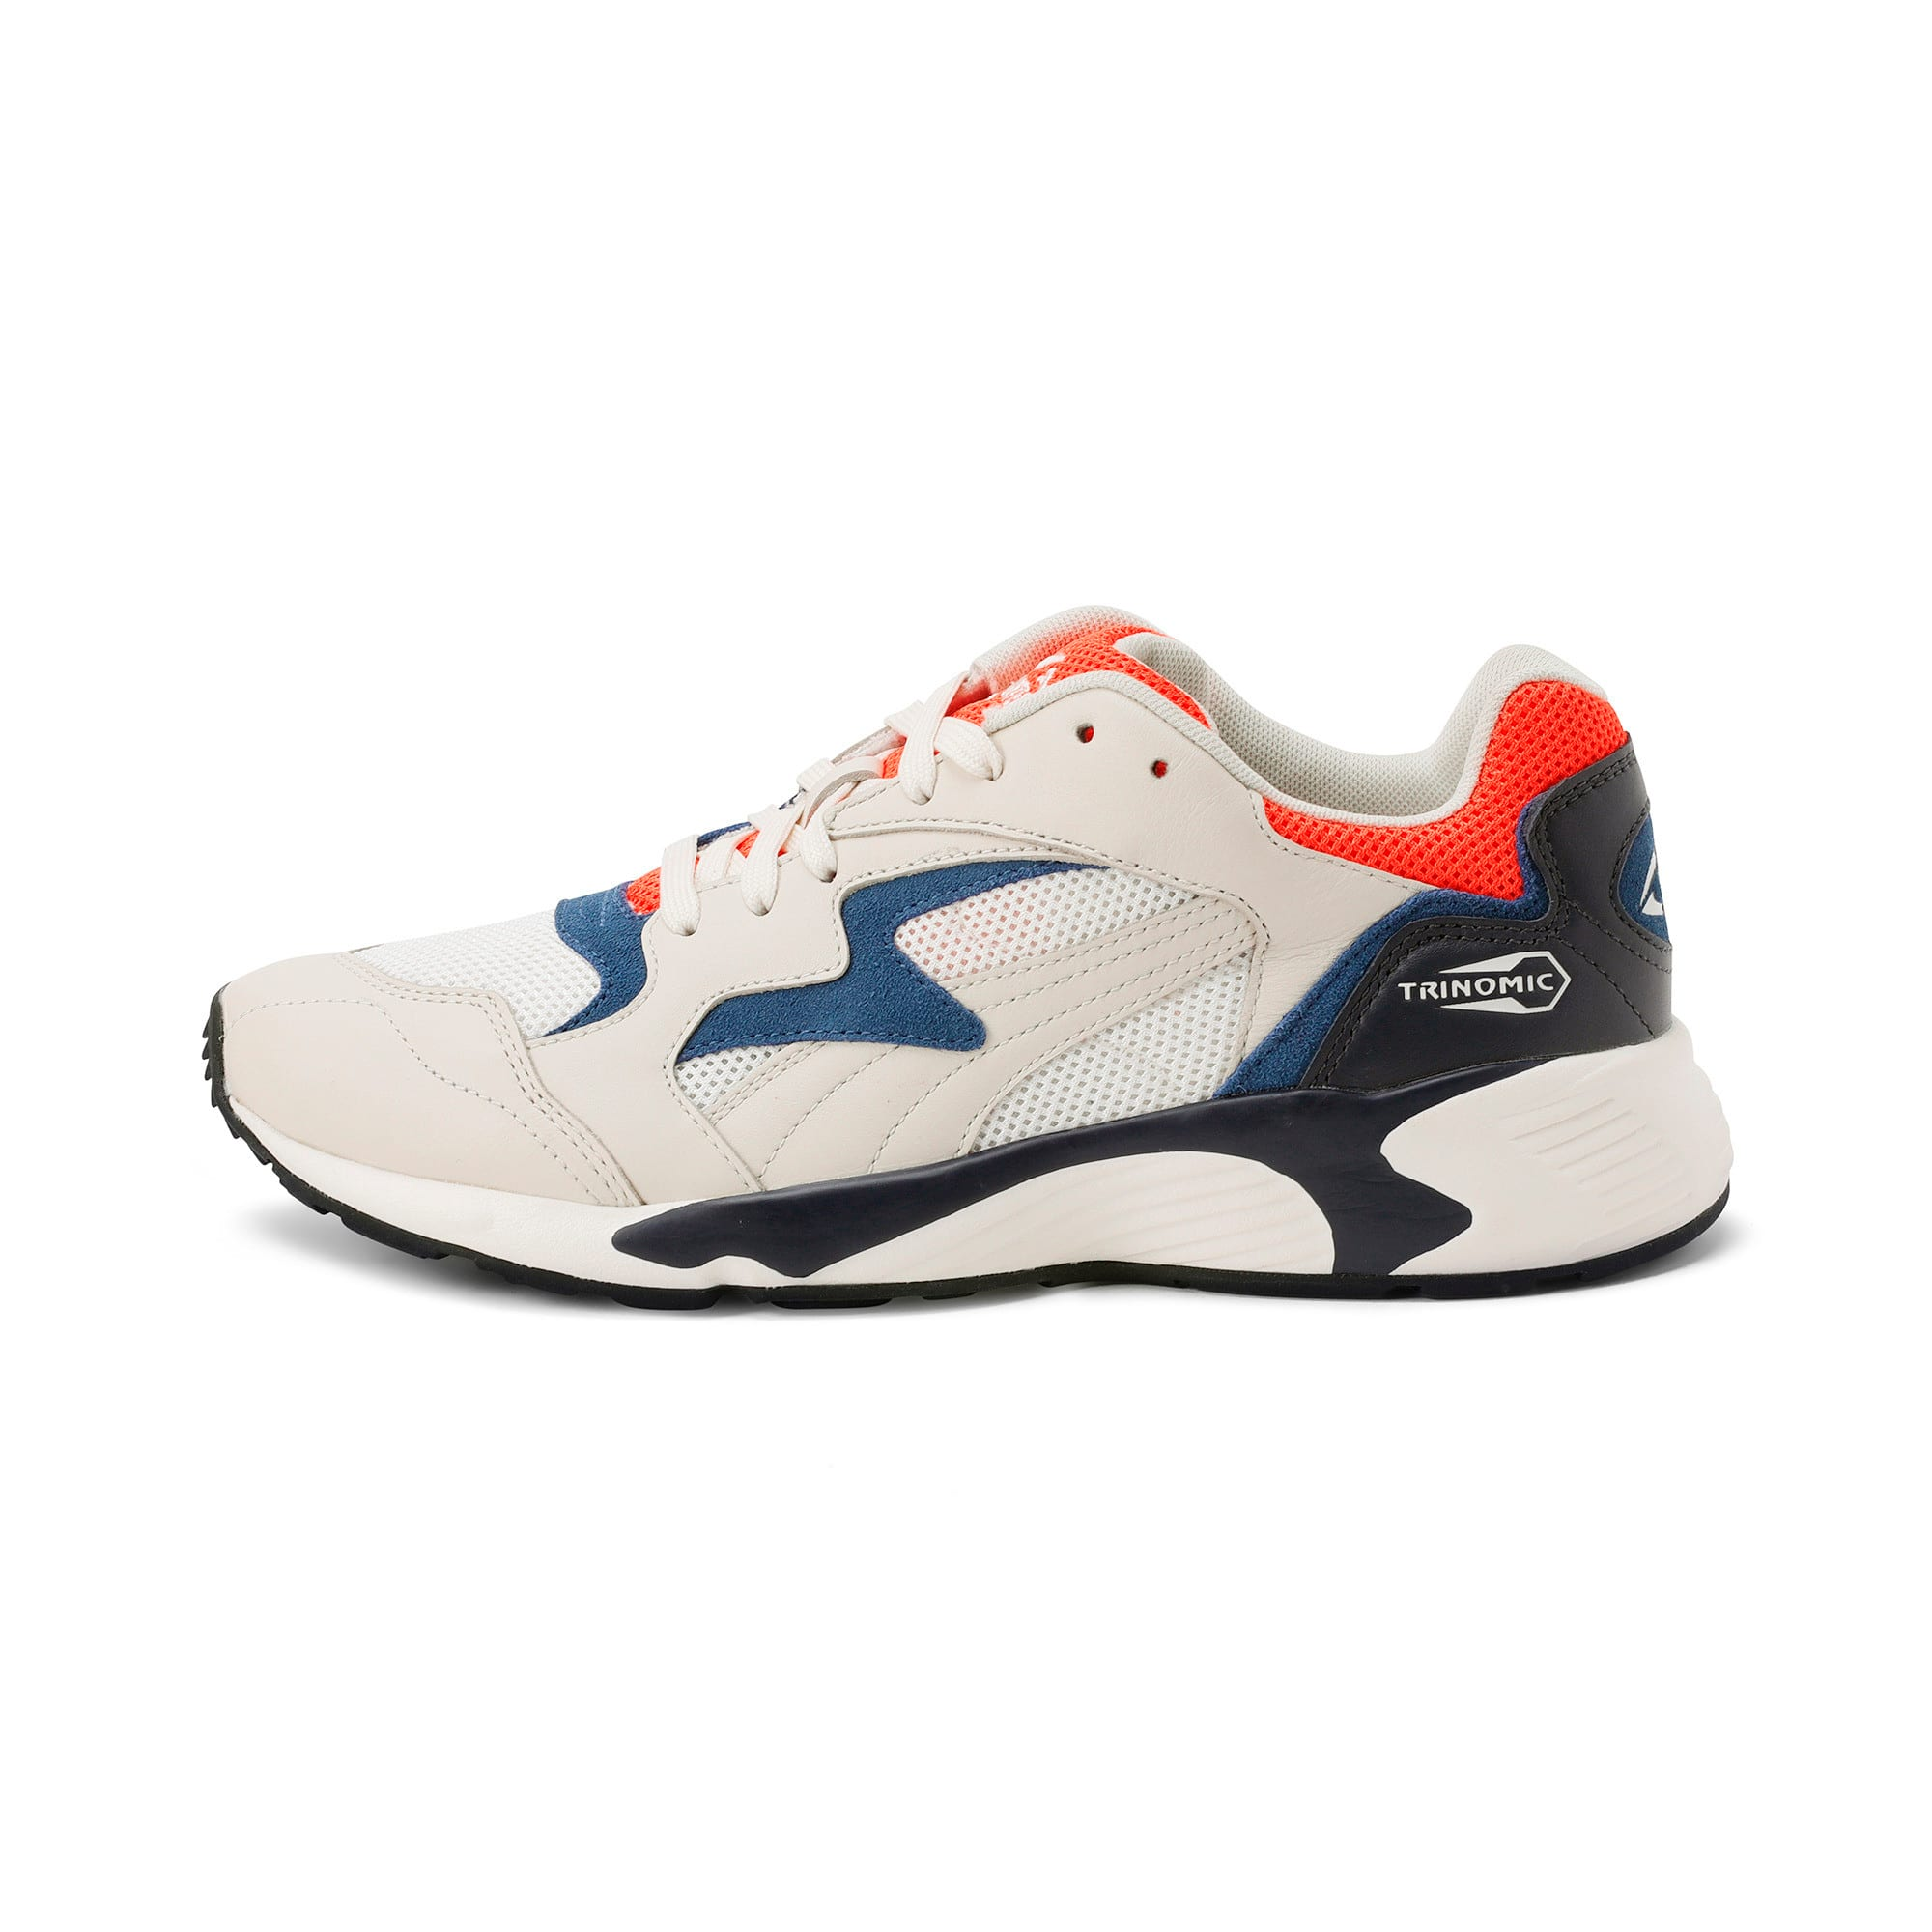 Thumbnail 1 of Prevail Classic Trainers, Whisper White-Nrgy Red, medium-IND